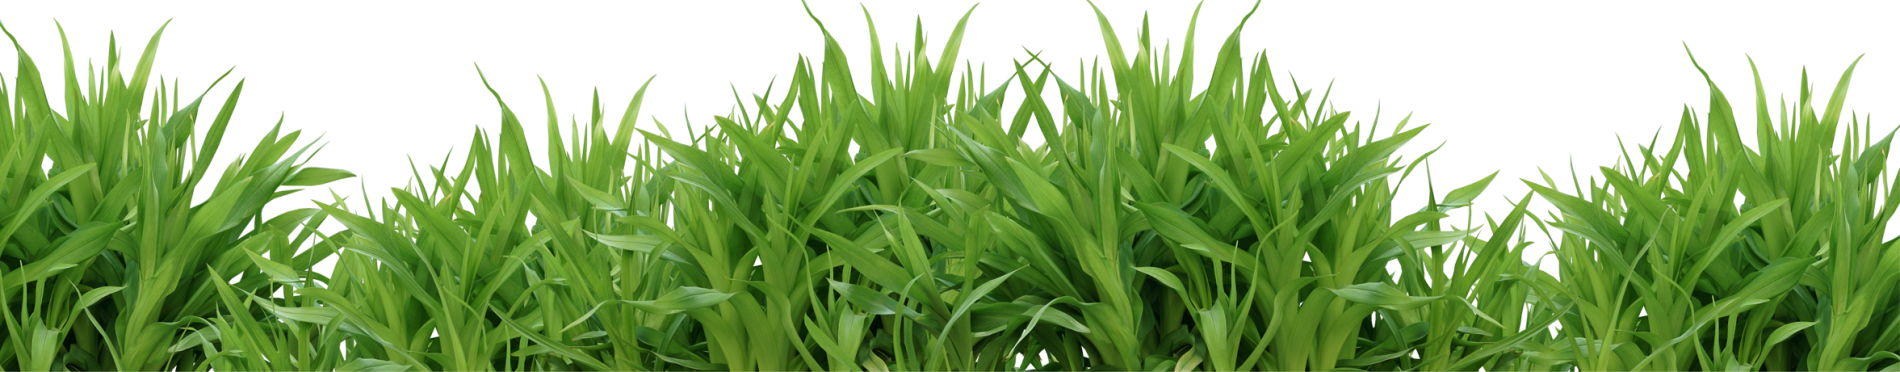 Grass png. Images pictures image green